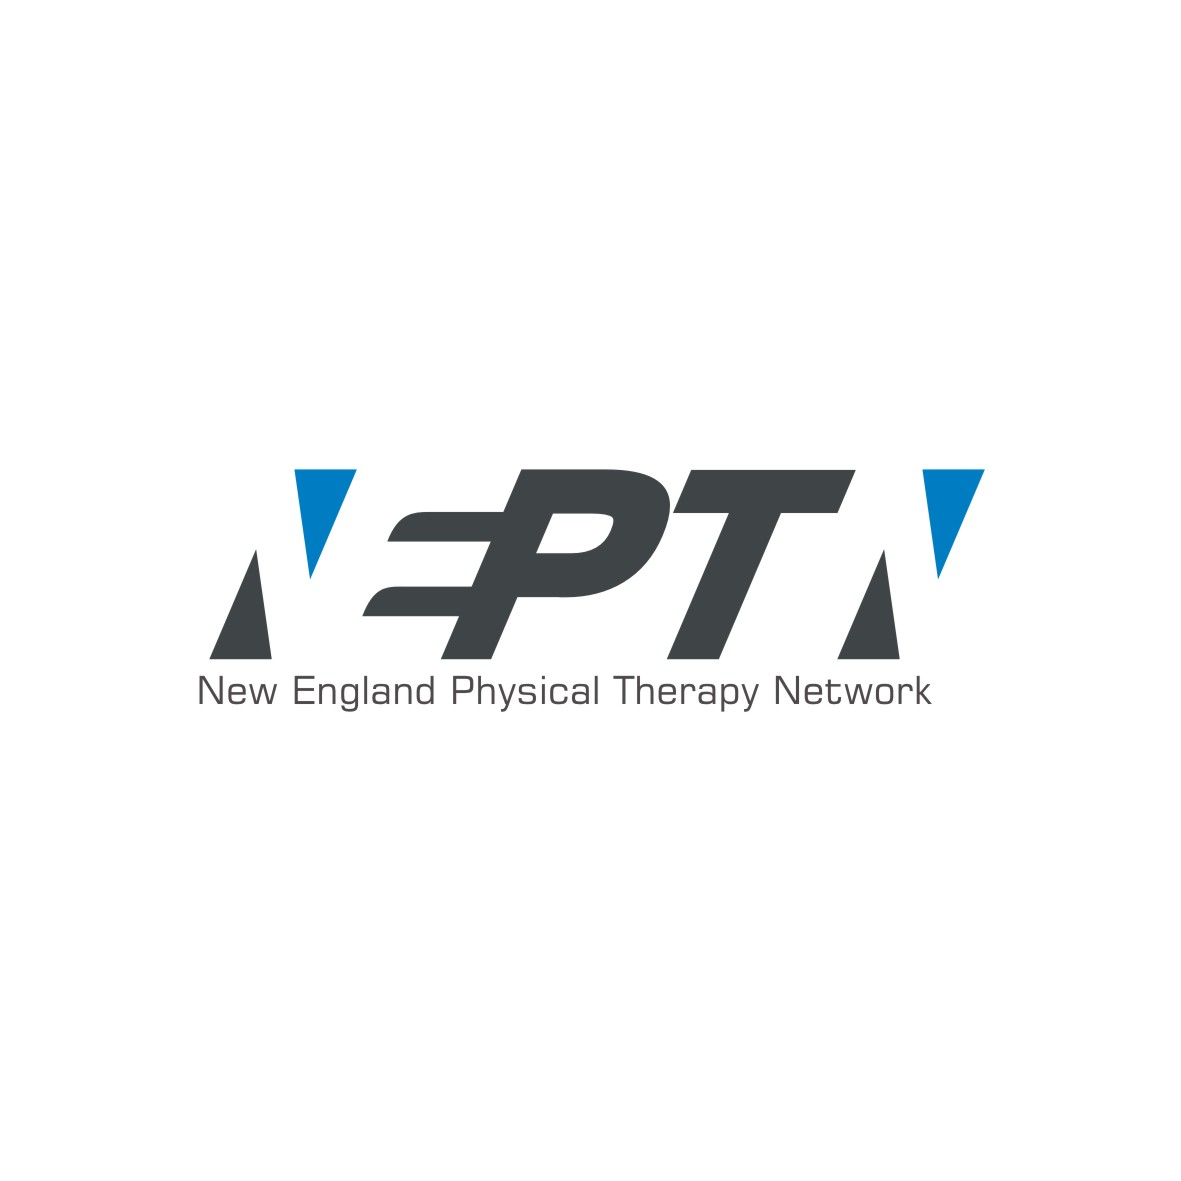 Logo Design by arteo_design - Entry No. 76 in the Logo Design Contest Fun Logo Design for NEPTN - New England Physical Therapy Network.